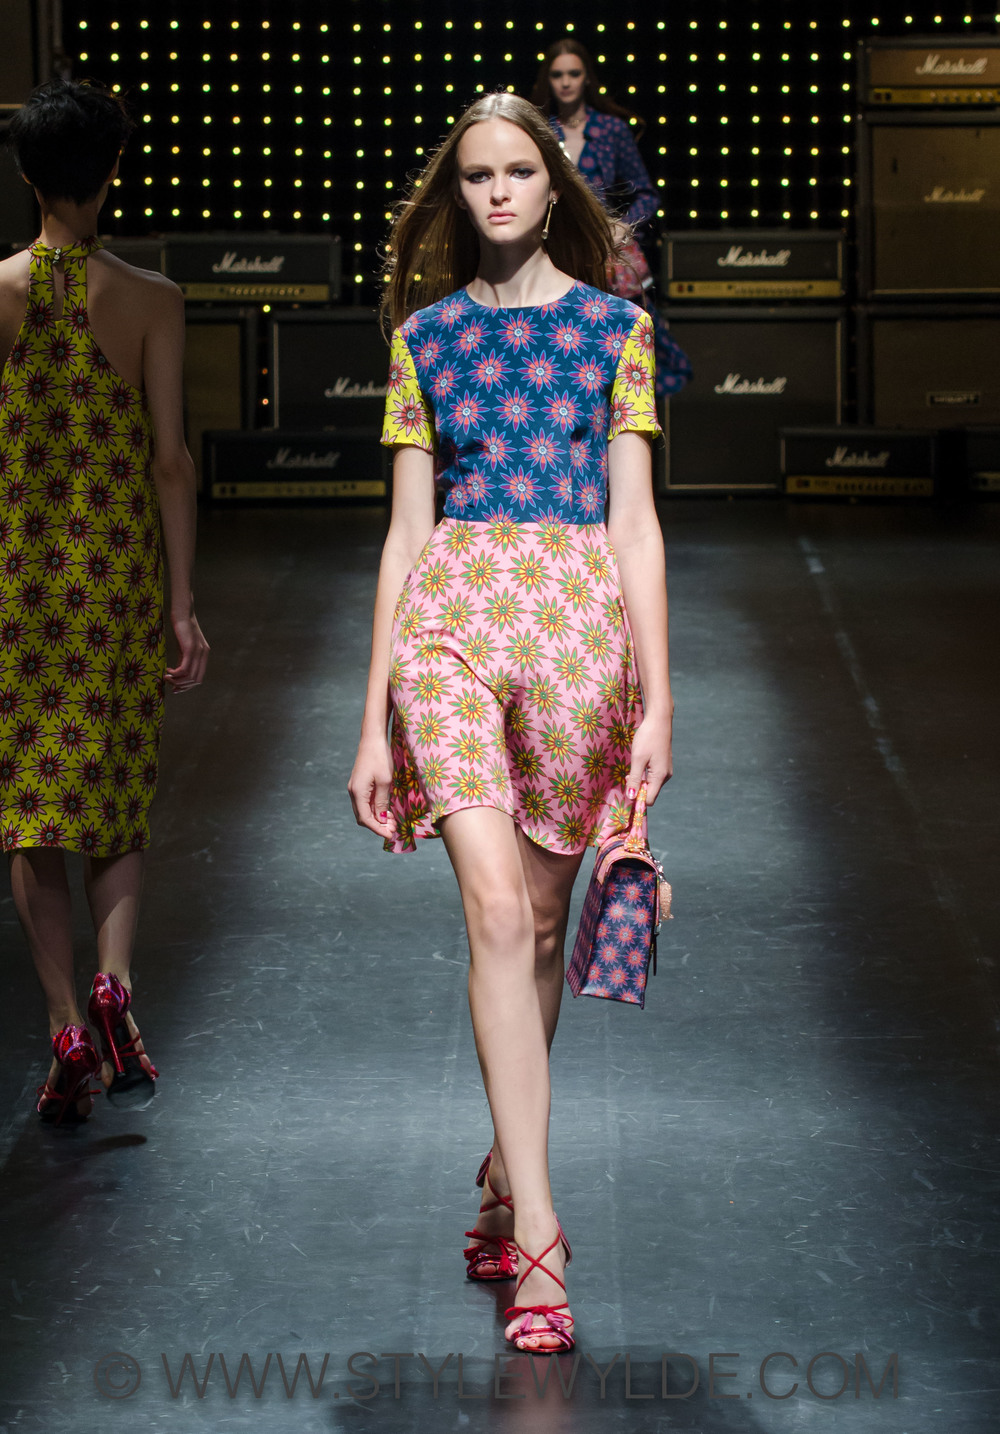 stylewylde_HouseofHolland_SS15 (35 of 68).jpg